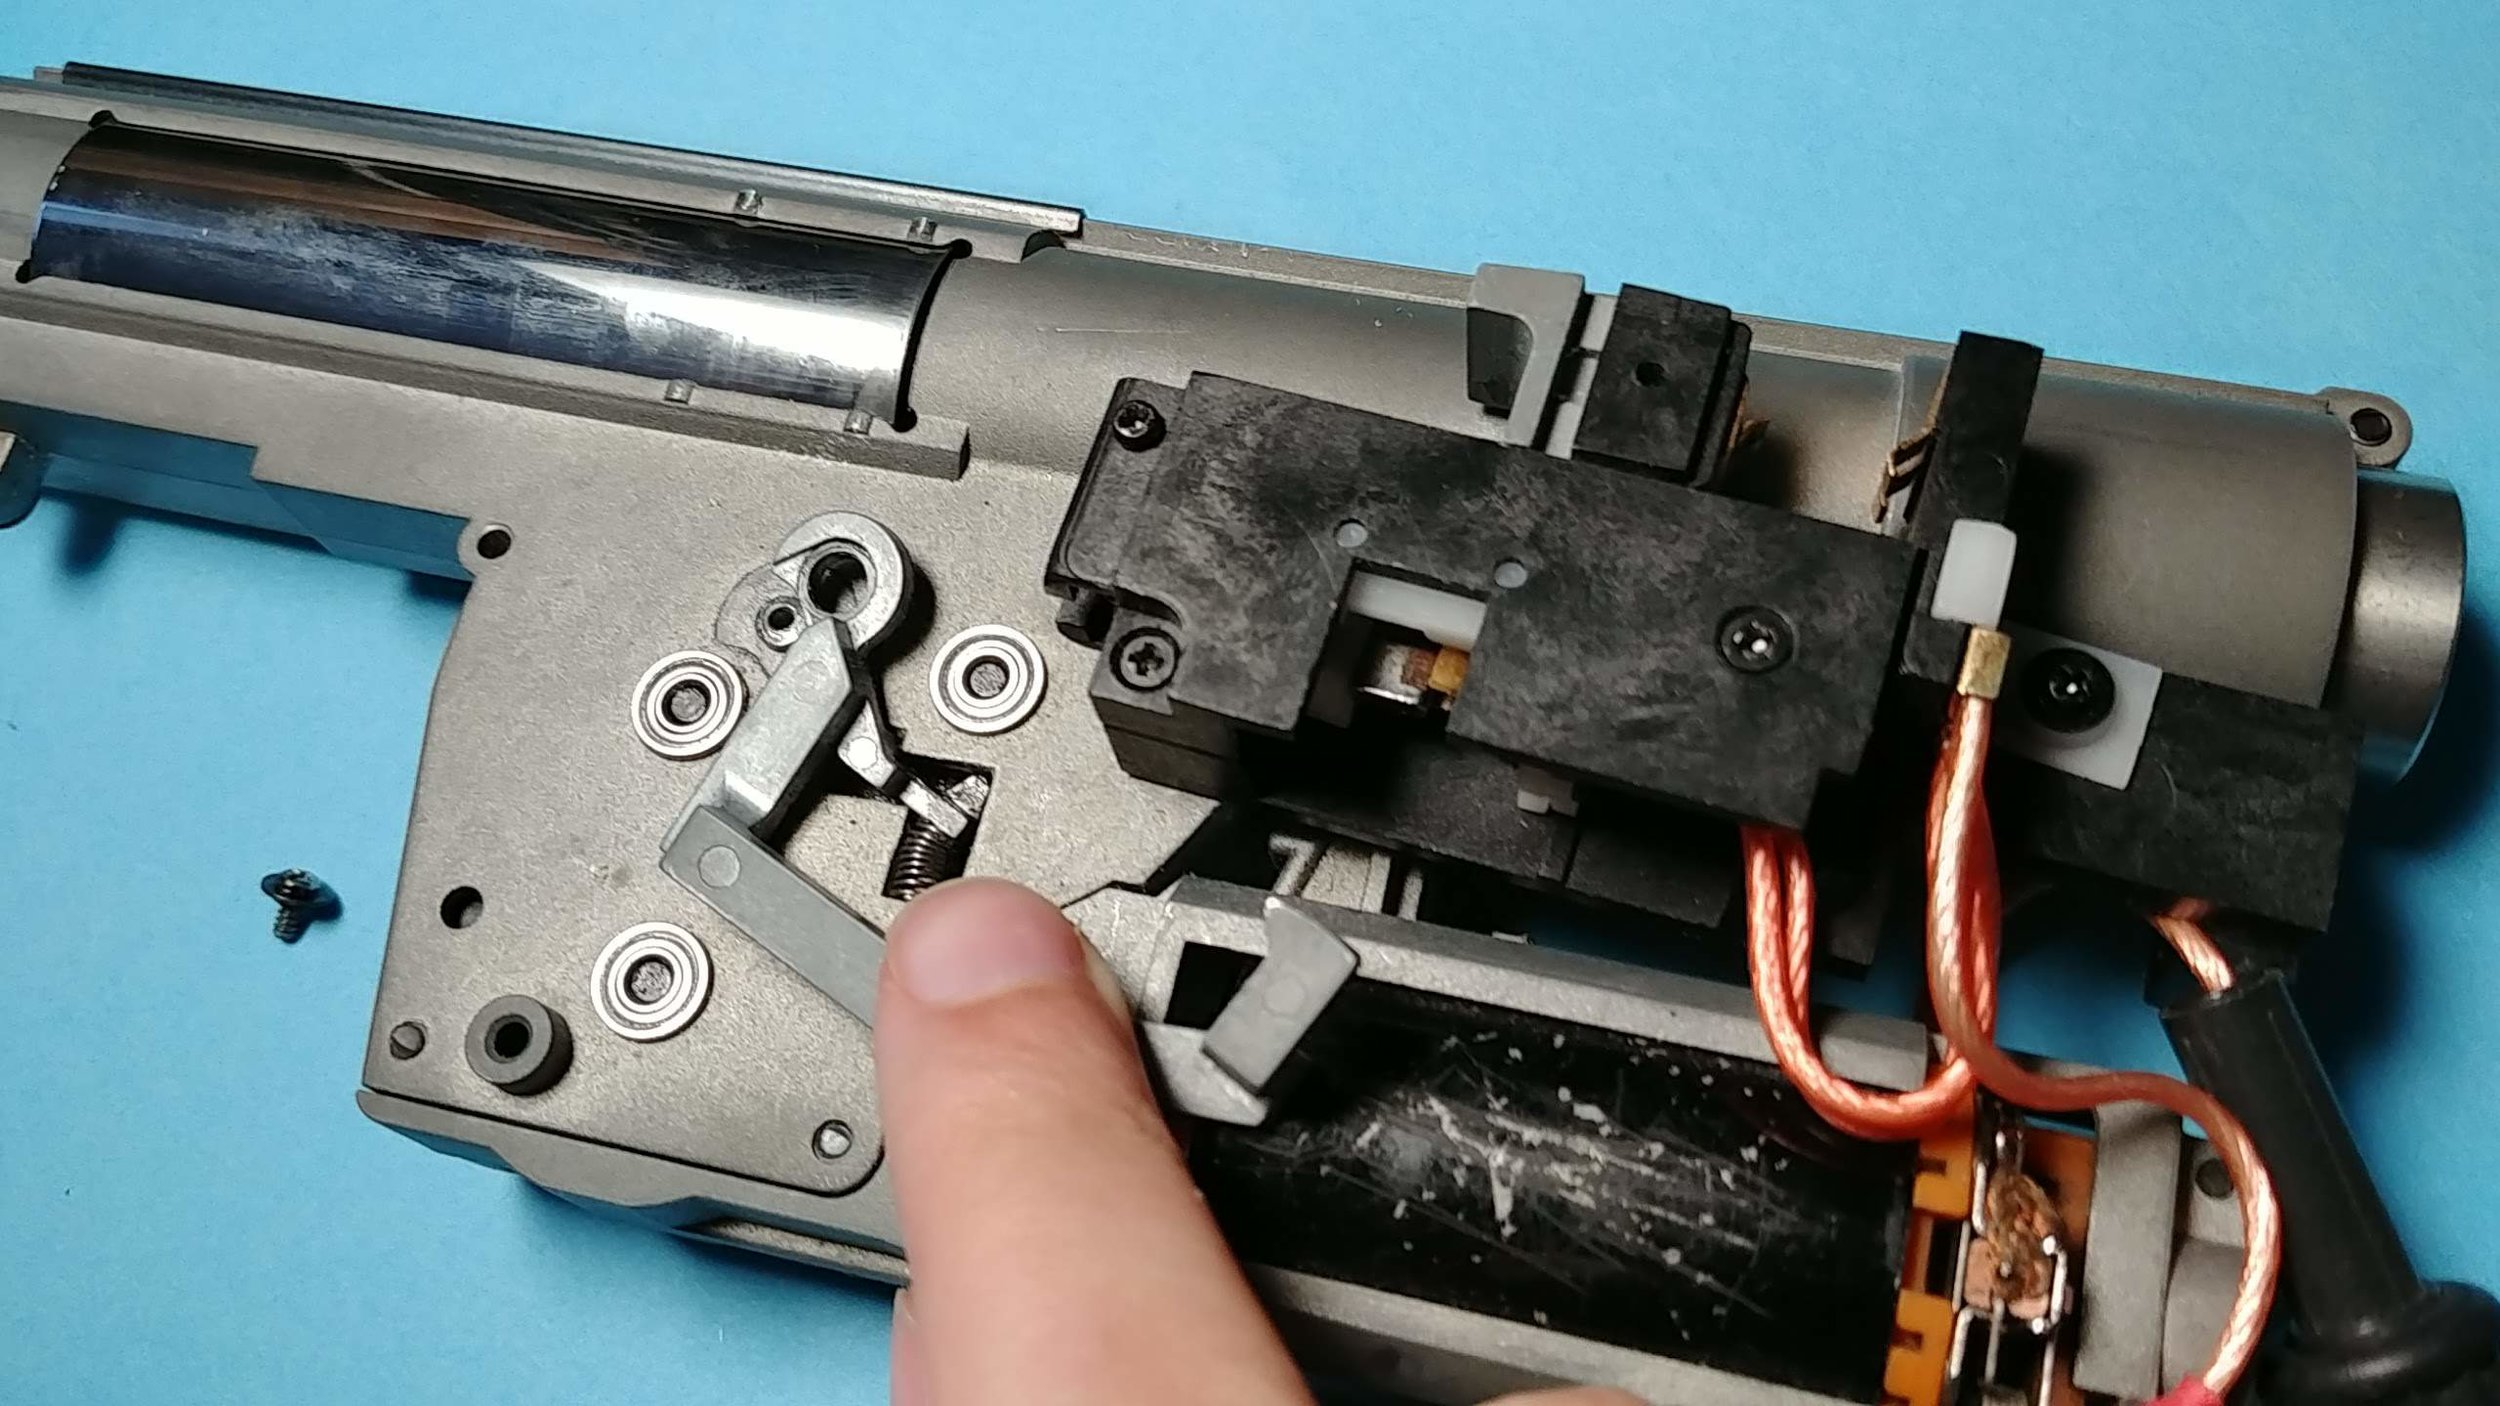 You may need to remove the cut off lever to get the trigger unit off